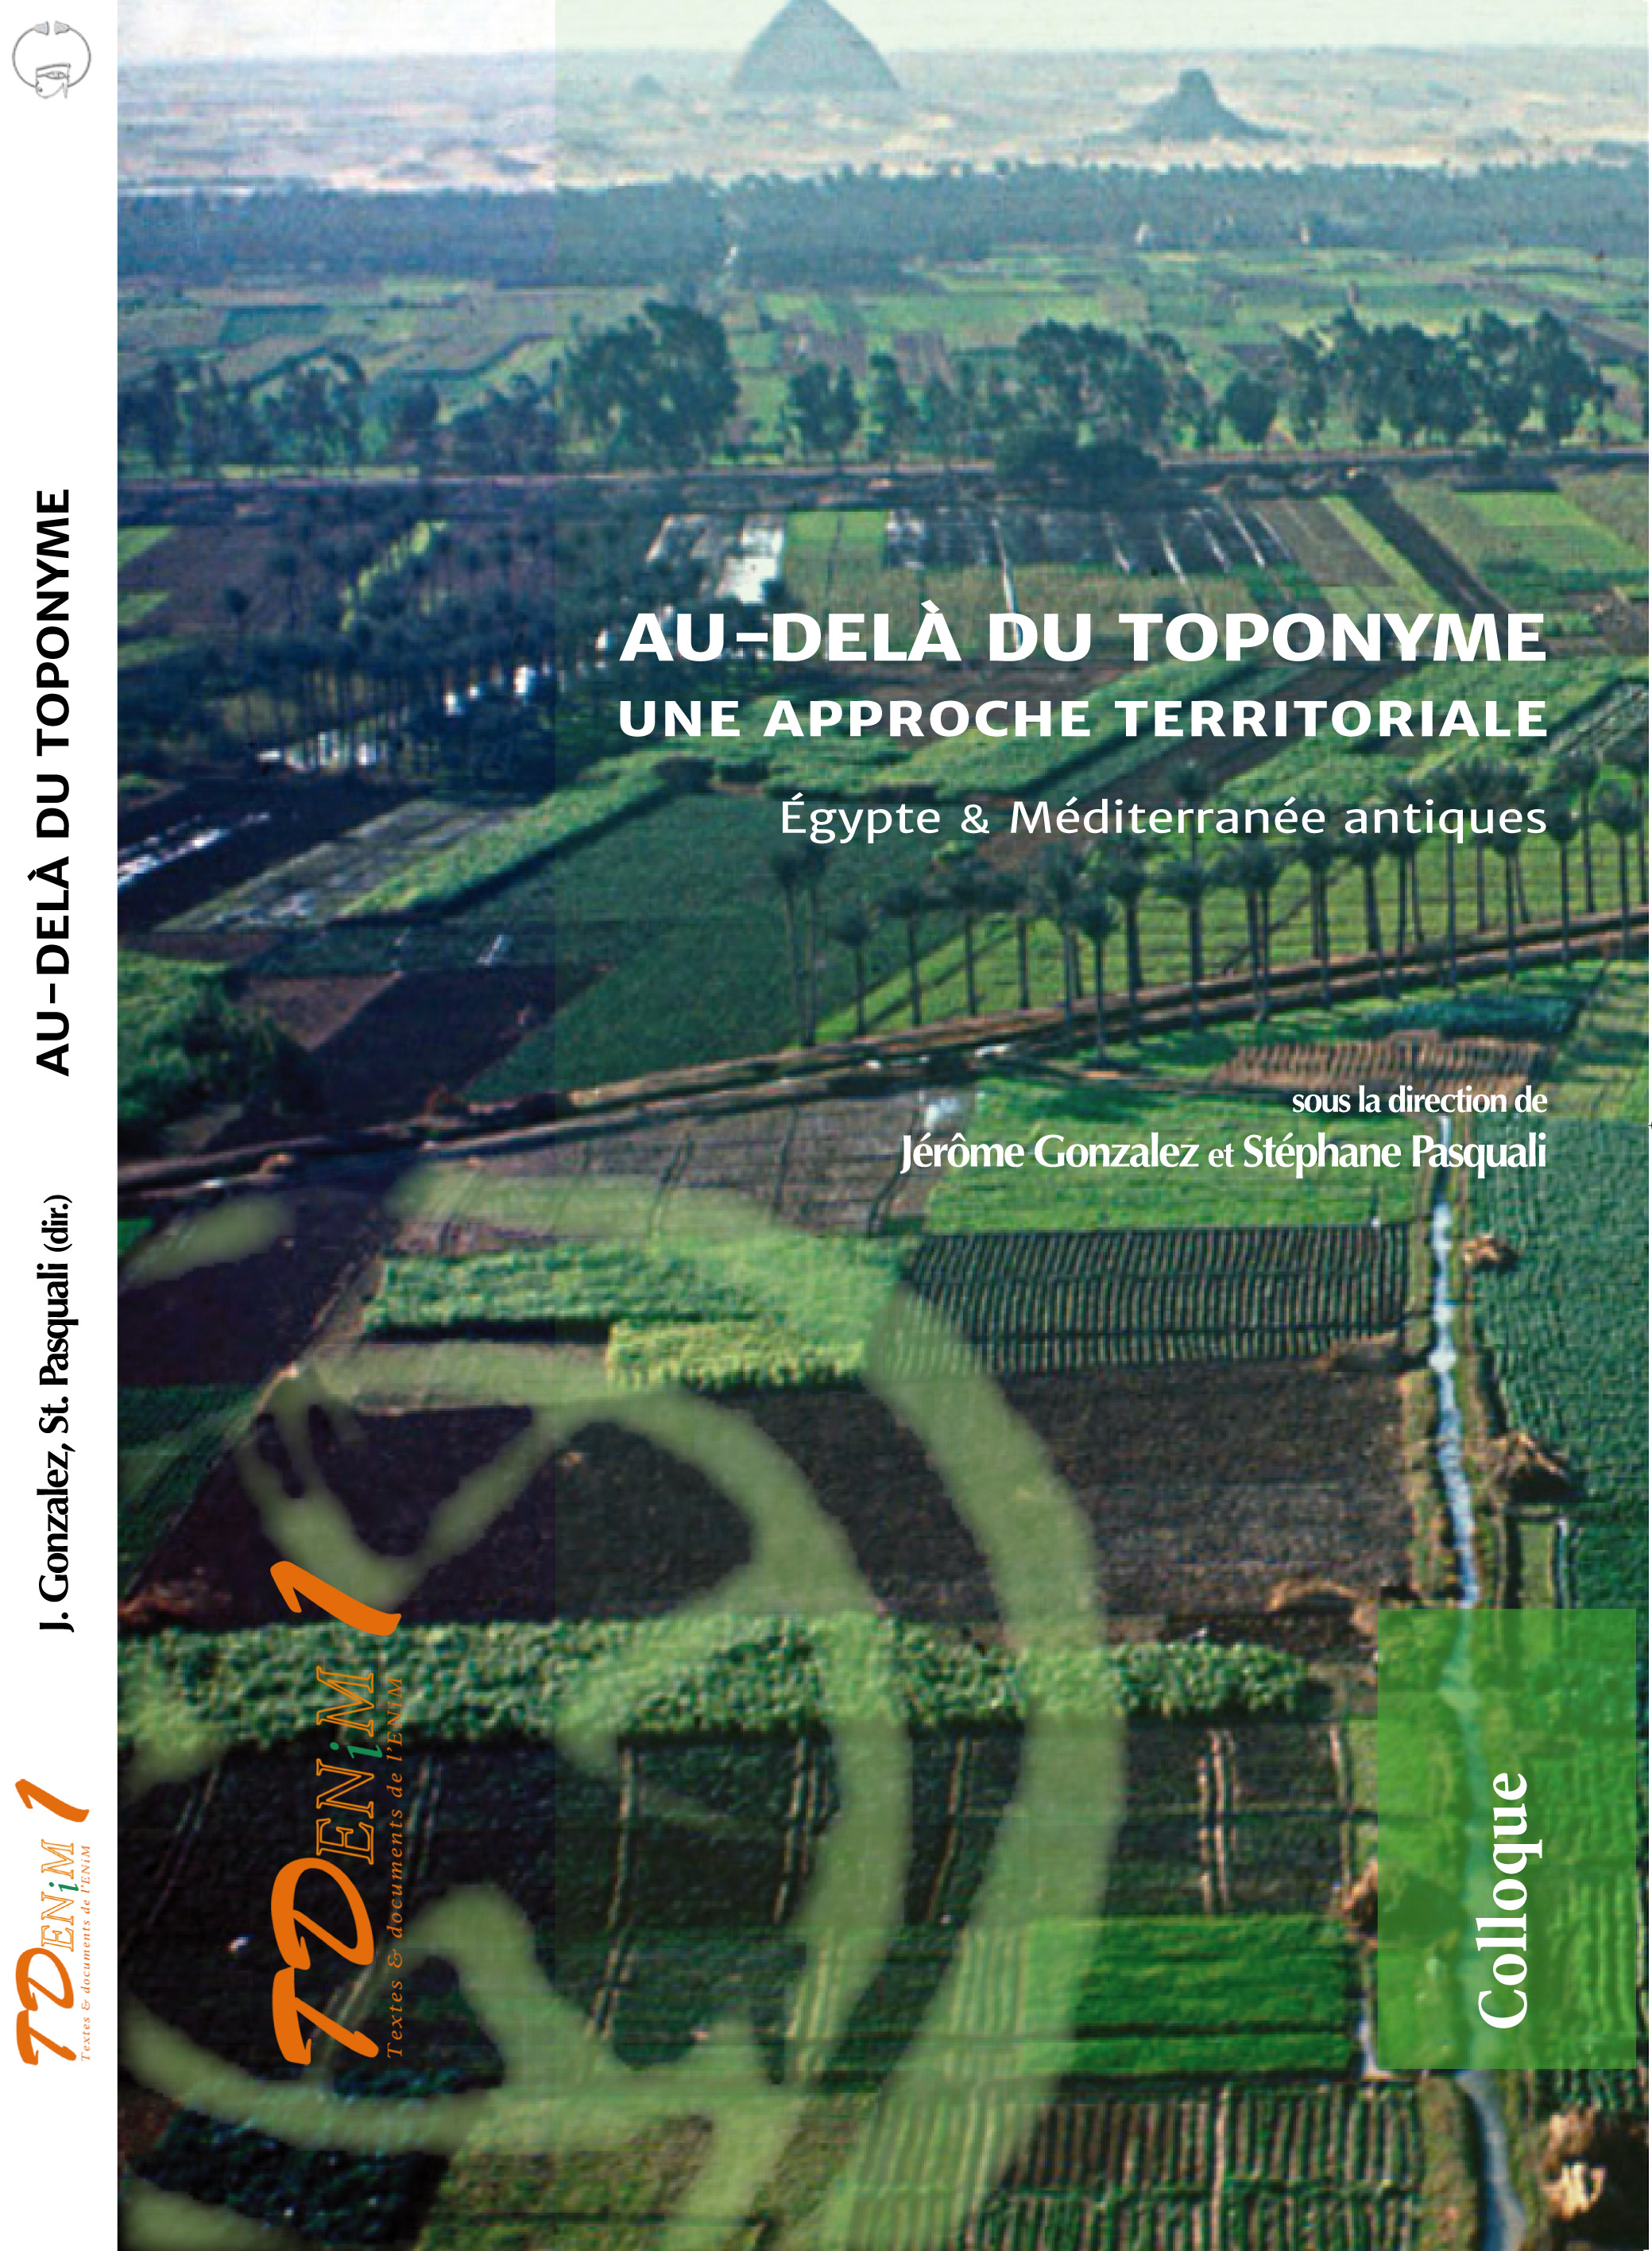 Au-delà du toponyme. Une approche territoriale. Égypte & Méditerranée antiques